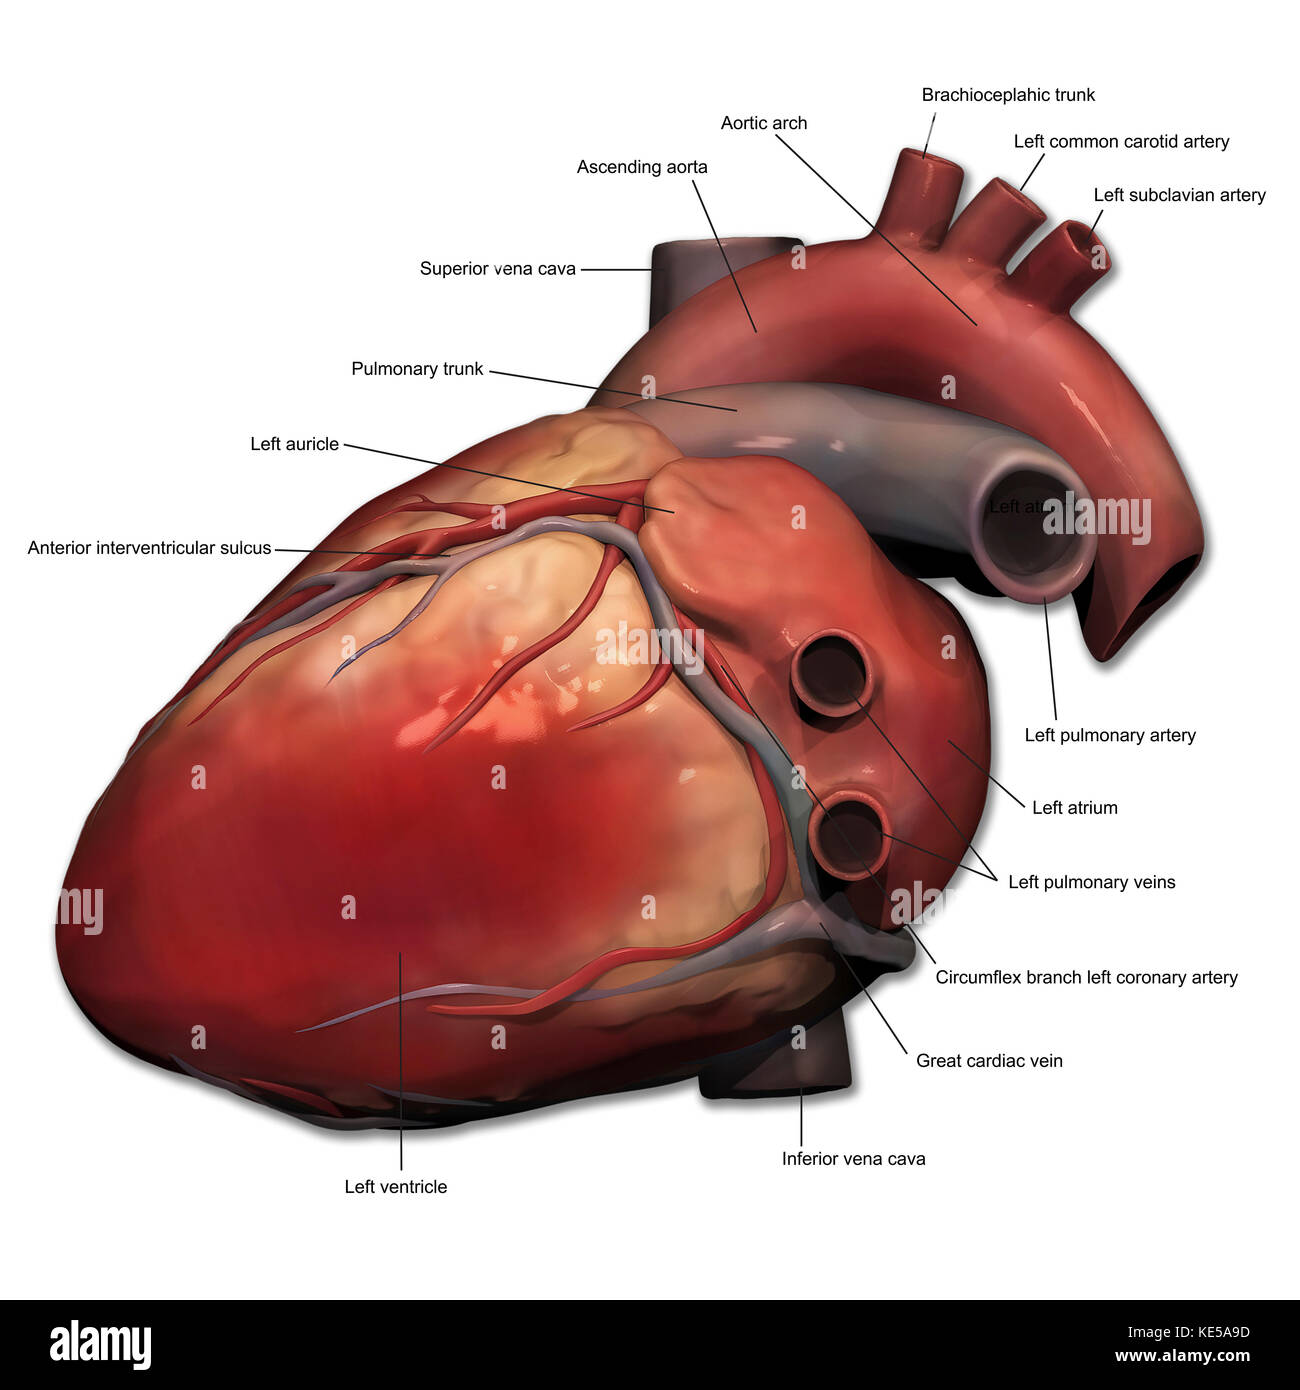 Lateral view of human heart anatomy Stock Photo: 163616361 - Alamy